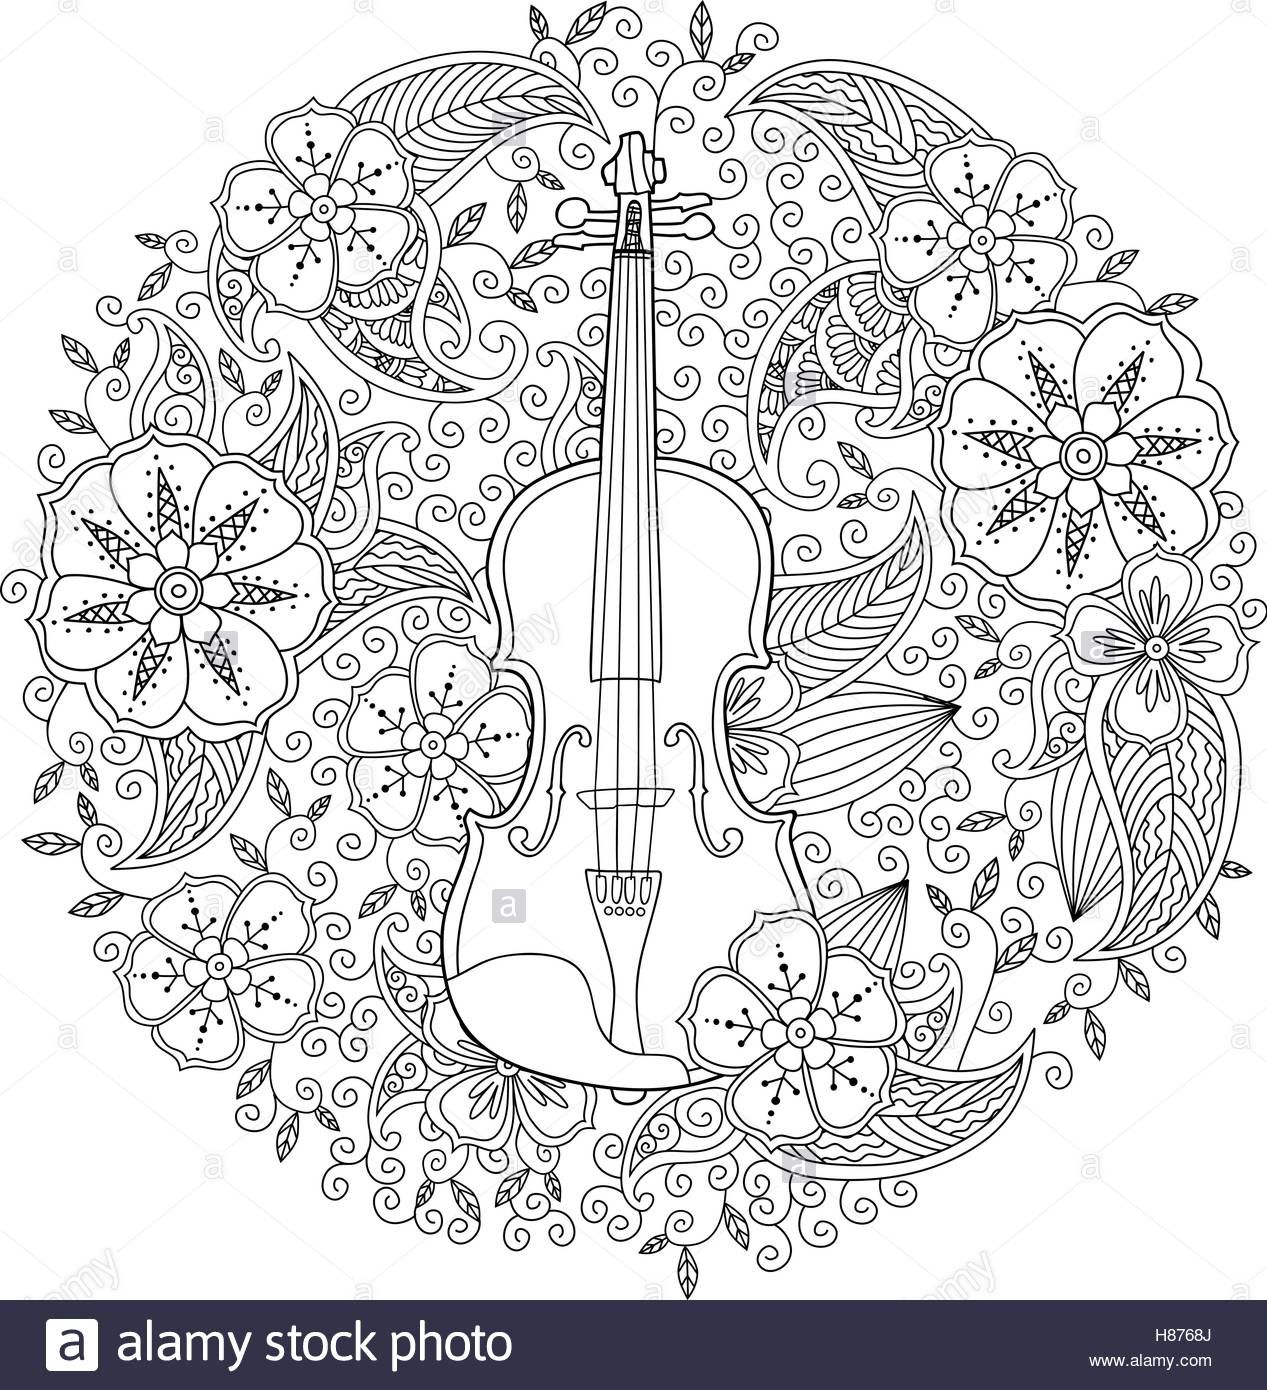 Coloring Page With Ornamental Violin In Circle Shape On White Background Stock Photo Music Coloring Coloring Pages Coloring Books